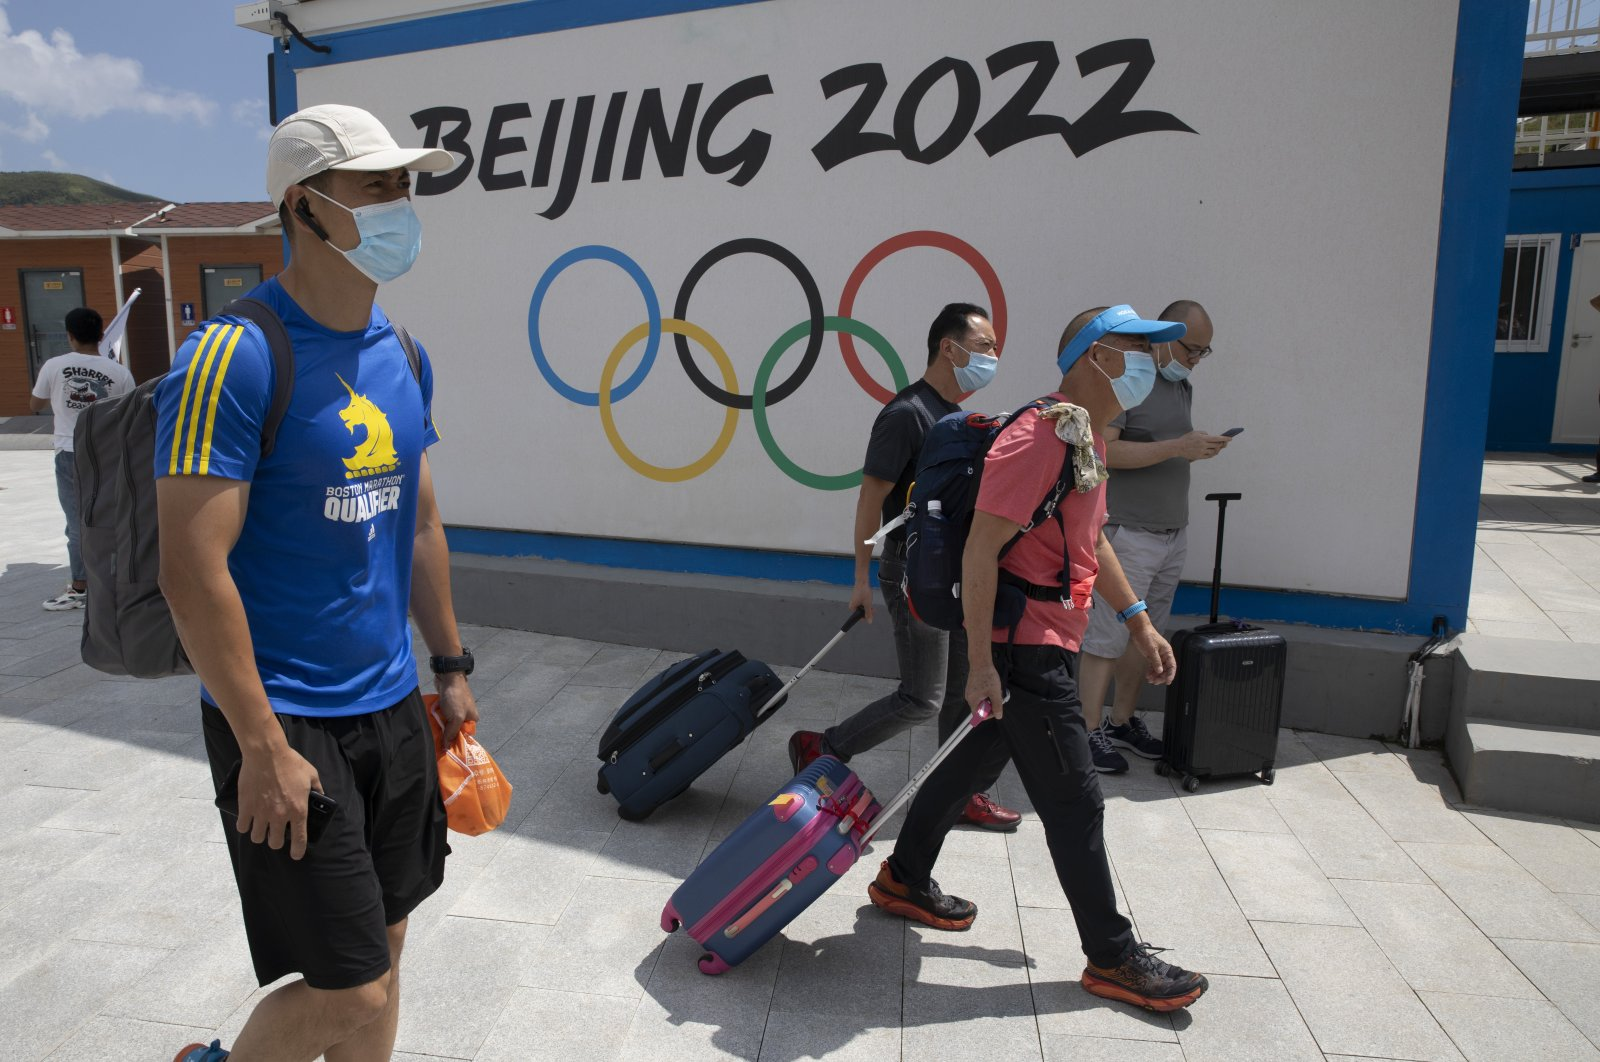 Visitors to Chongli, one of the venues for the Beijing 2022 Winter Olympics, past by the Olympics logo in Chongli in northern China's Hebei Province on Thursday, Aug. 13, 2020. (AP Photo)